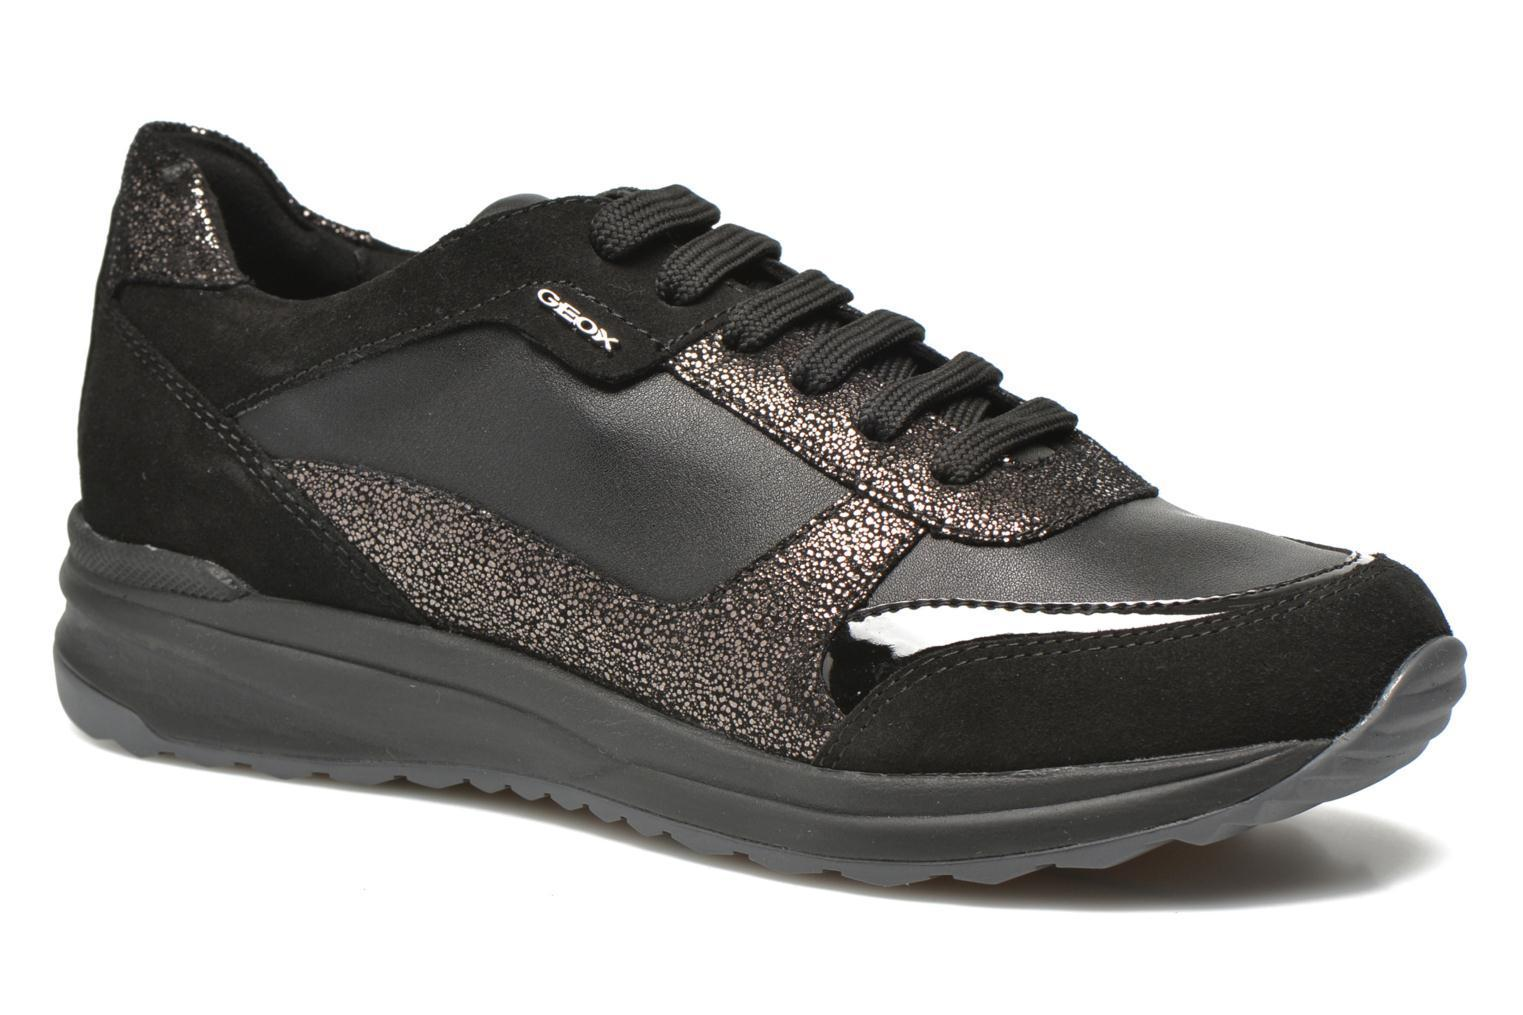 SCARPE SNEAKERS DONNA GEOX ORIGINALE AIRELL D6425C PELLE SHOES A/I 2016/17 NEW